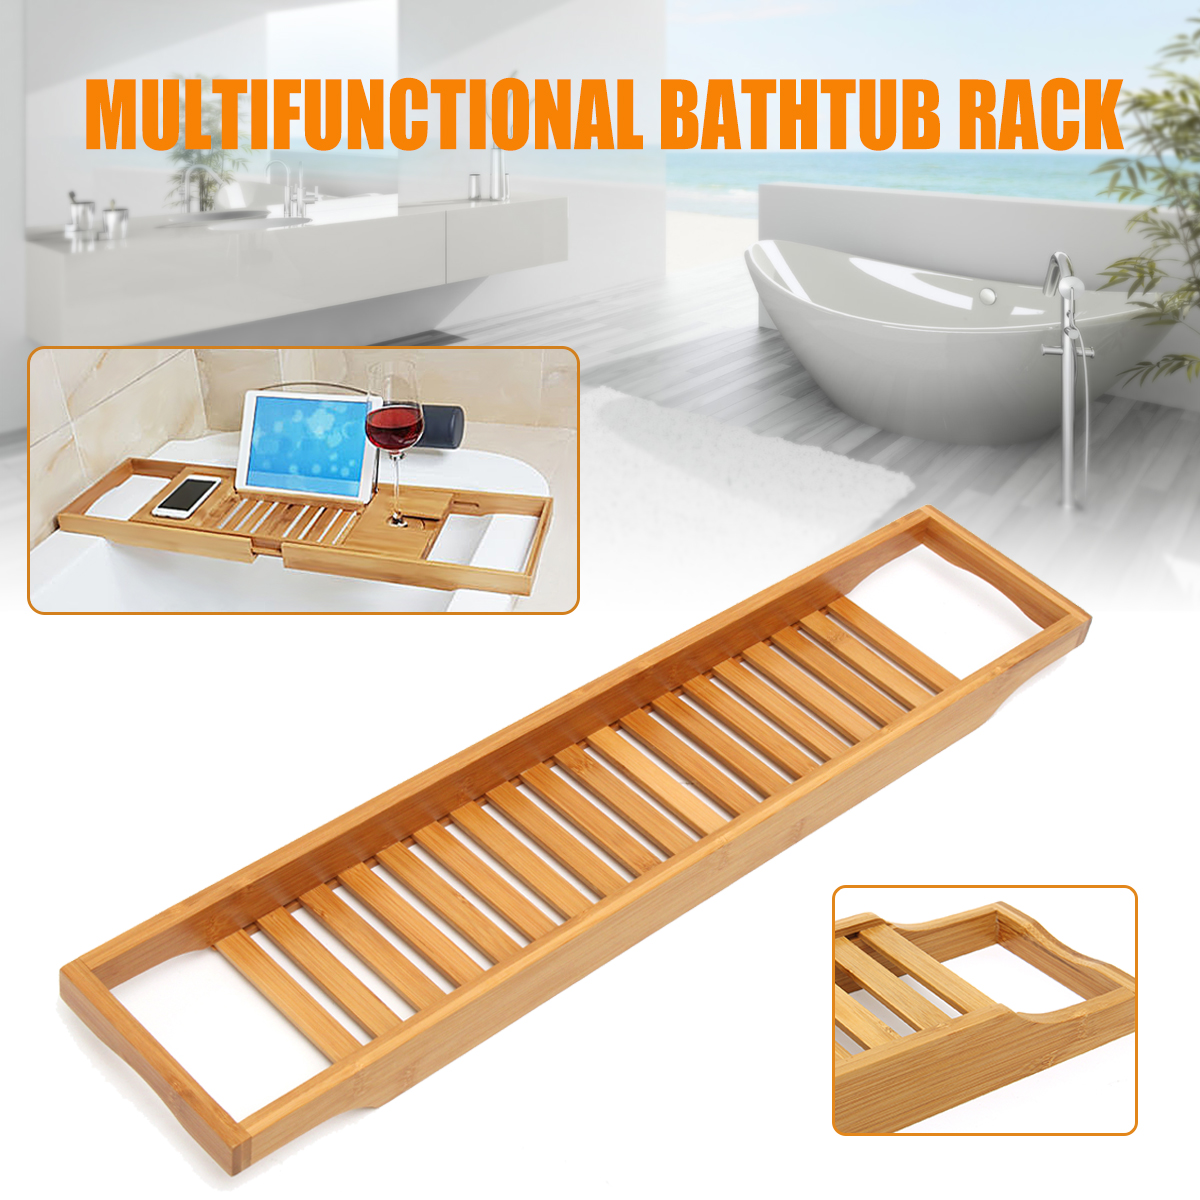 Buy bath rack wooden and get free shipping on AliExpress.com